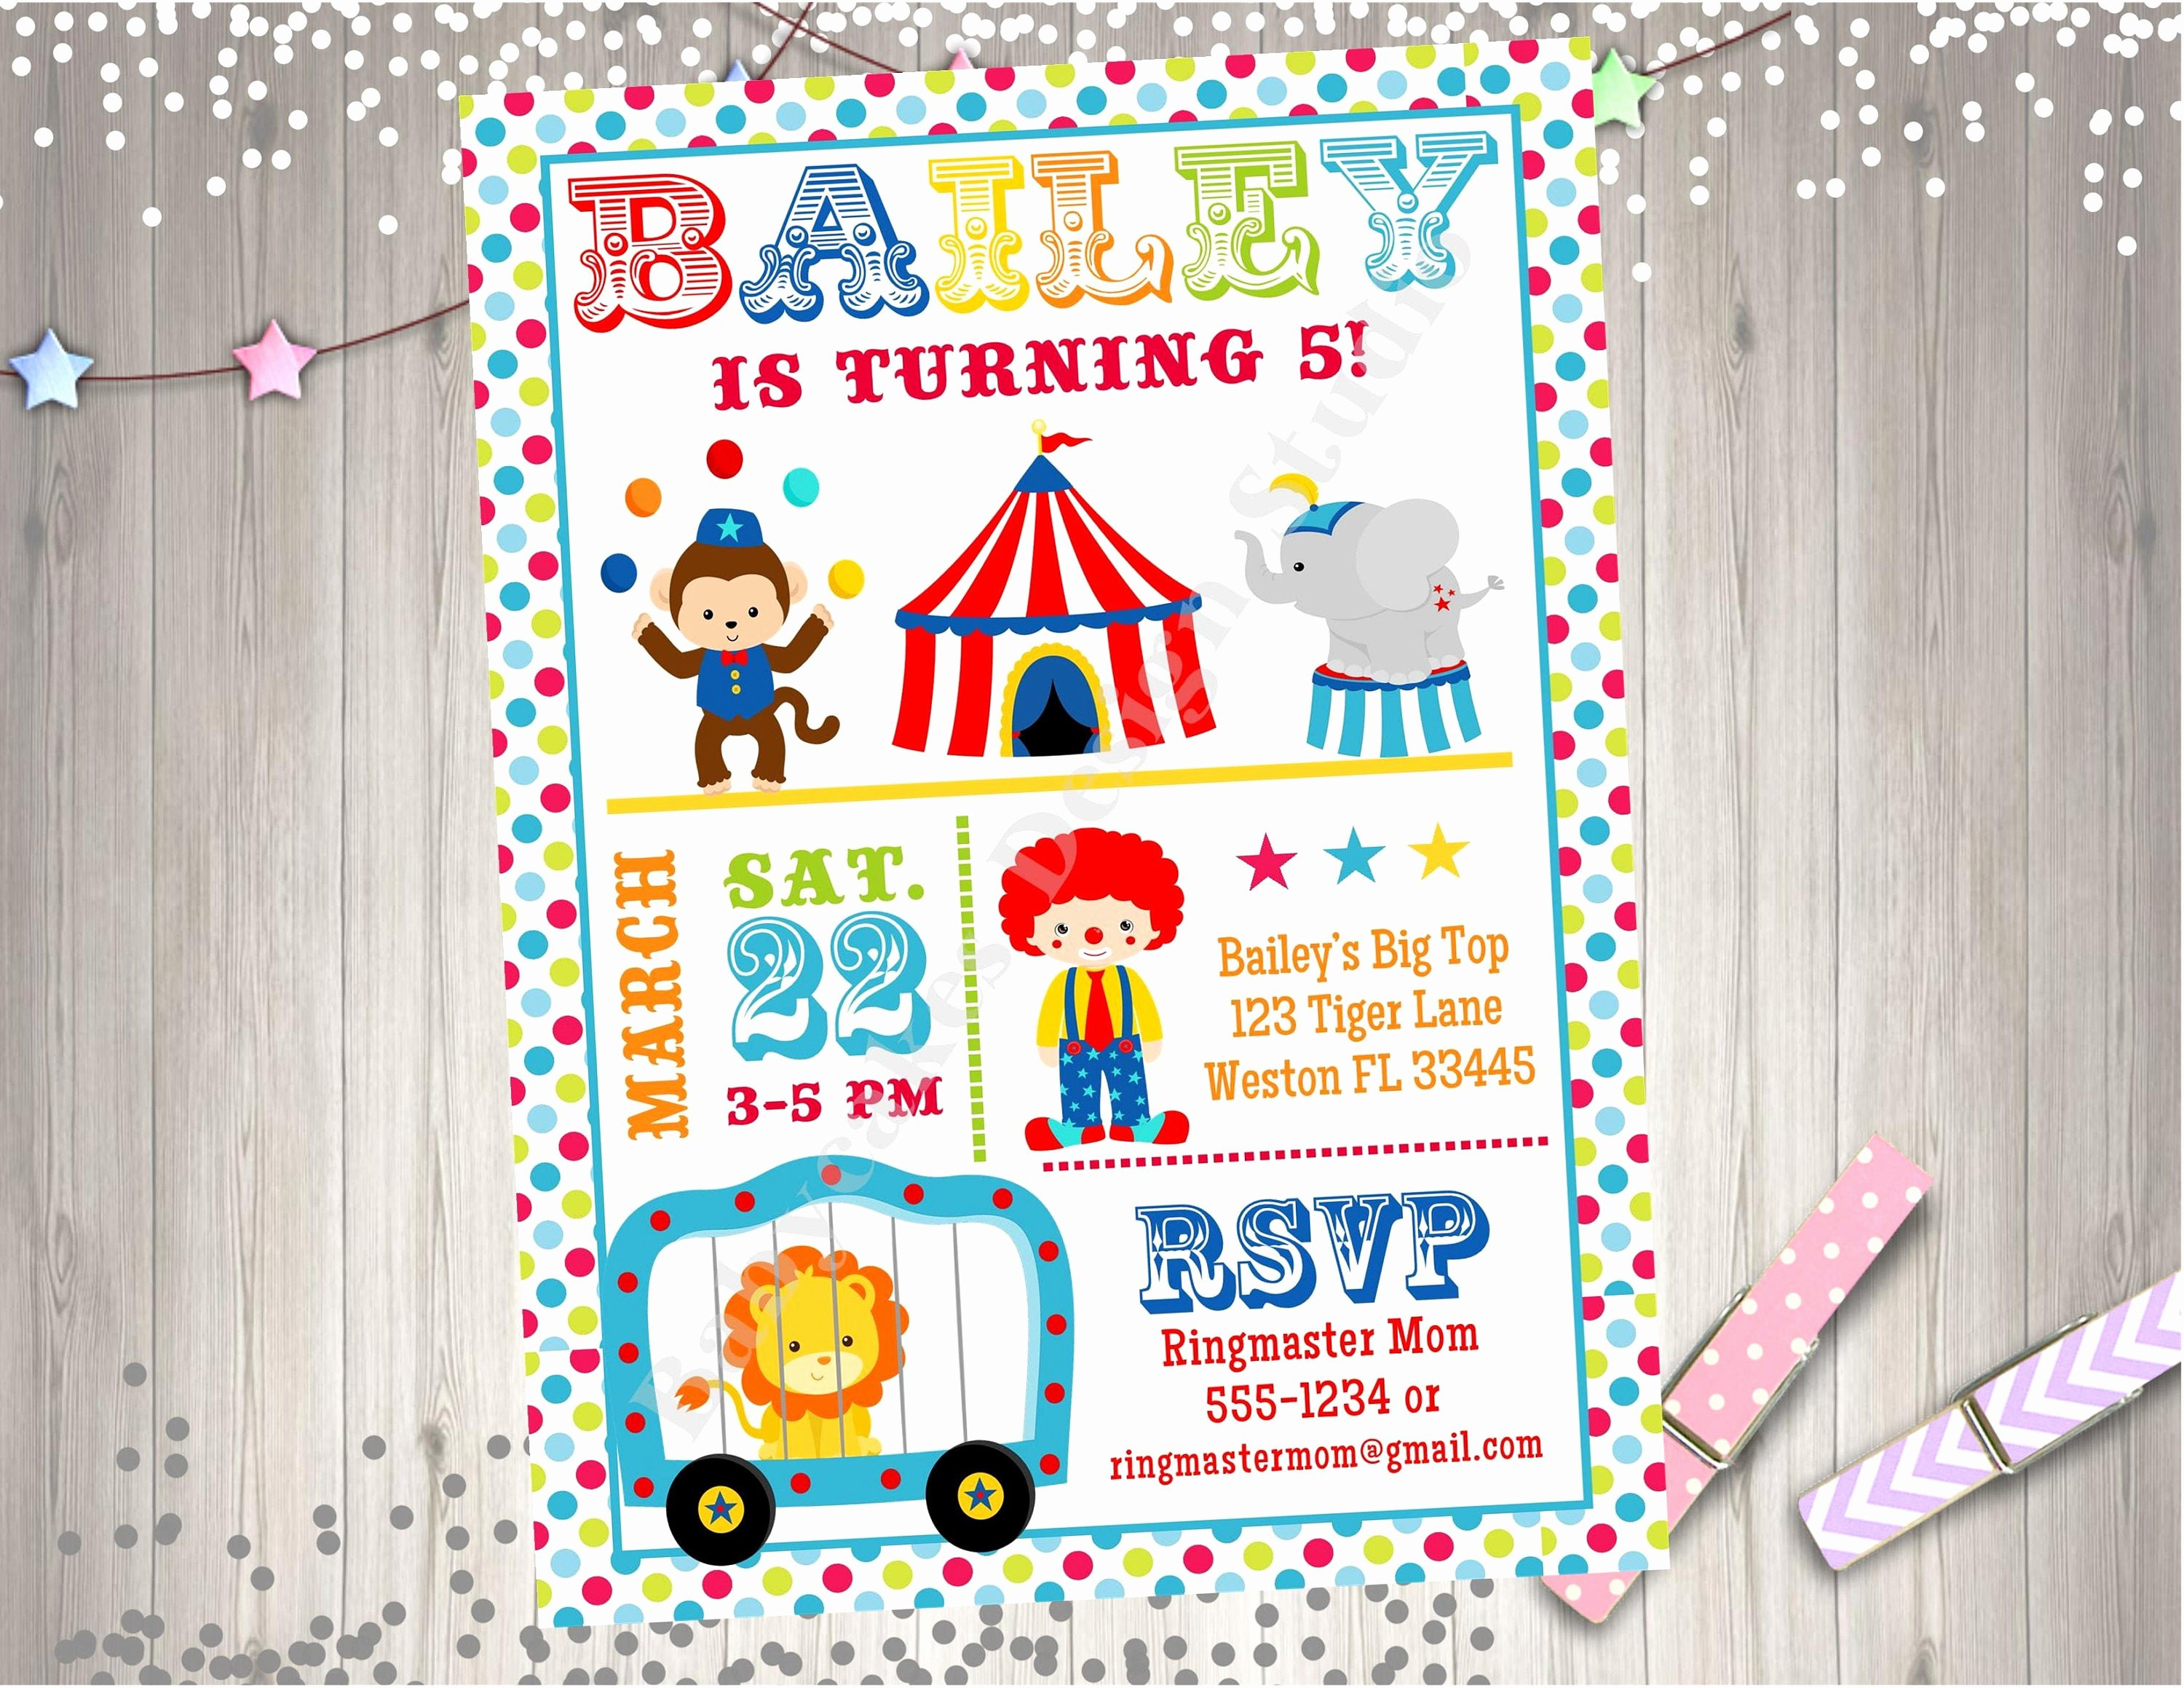 Carnival Birthday Party Invitations Beautiful Circus Invitation Invite Circus Birthday Party Invitation